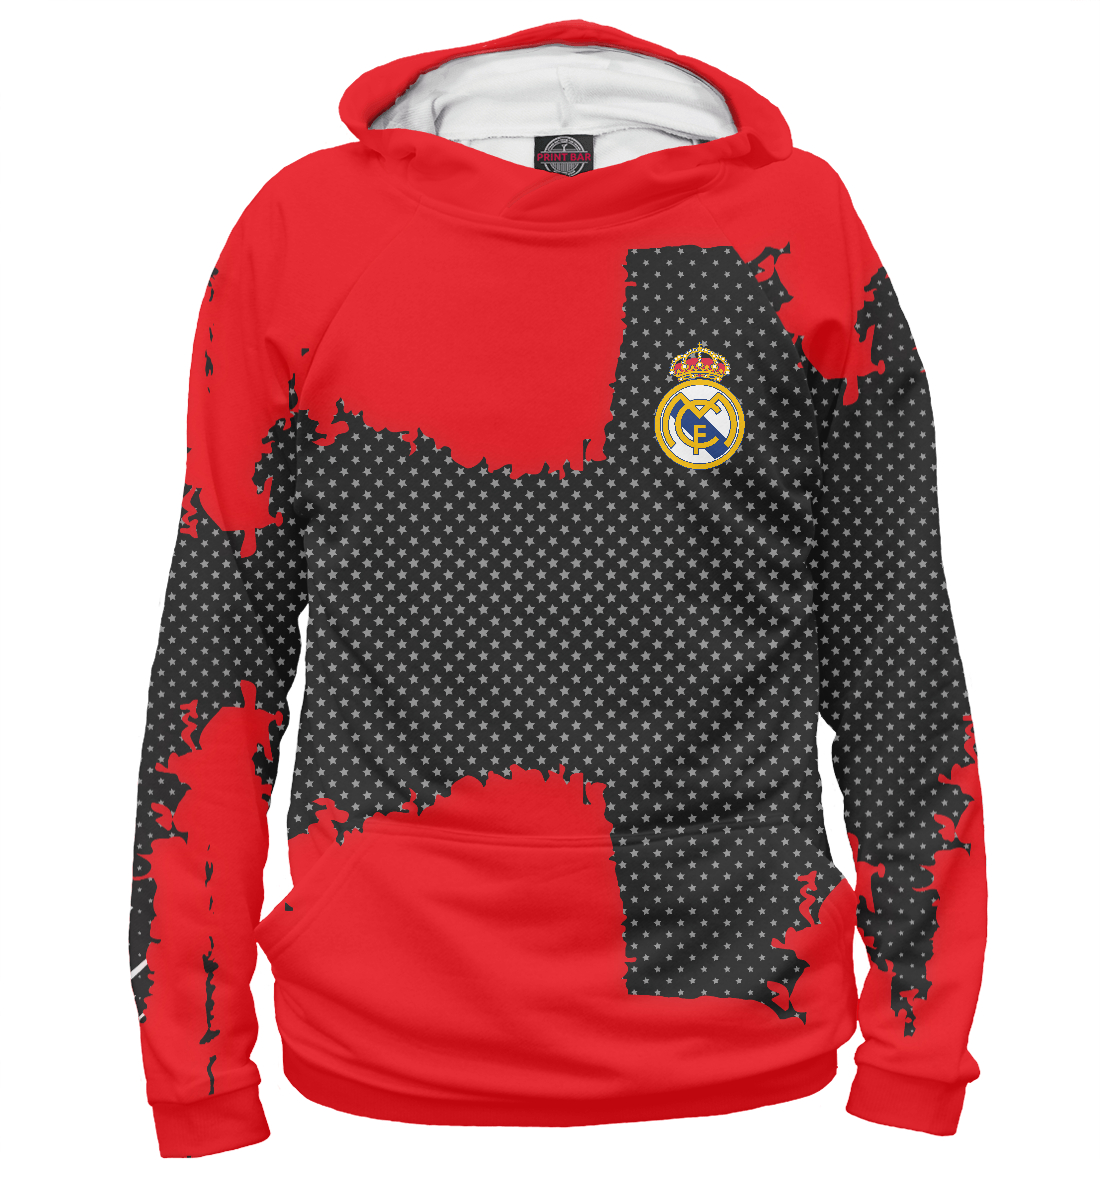 Купить Real Madrid sport uniform, Printbar, Худи, REA-105522-hud-1